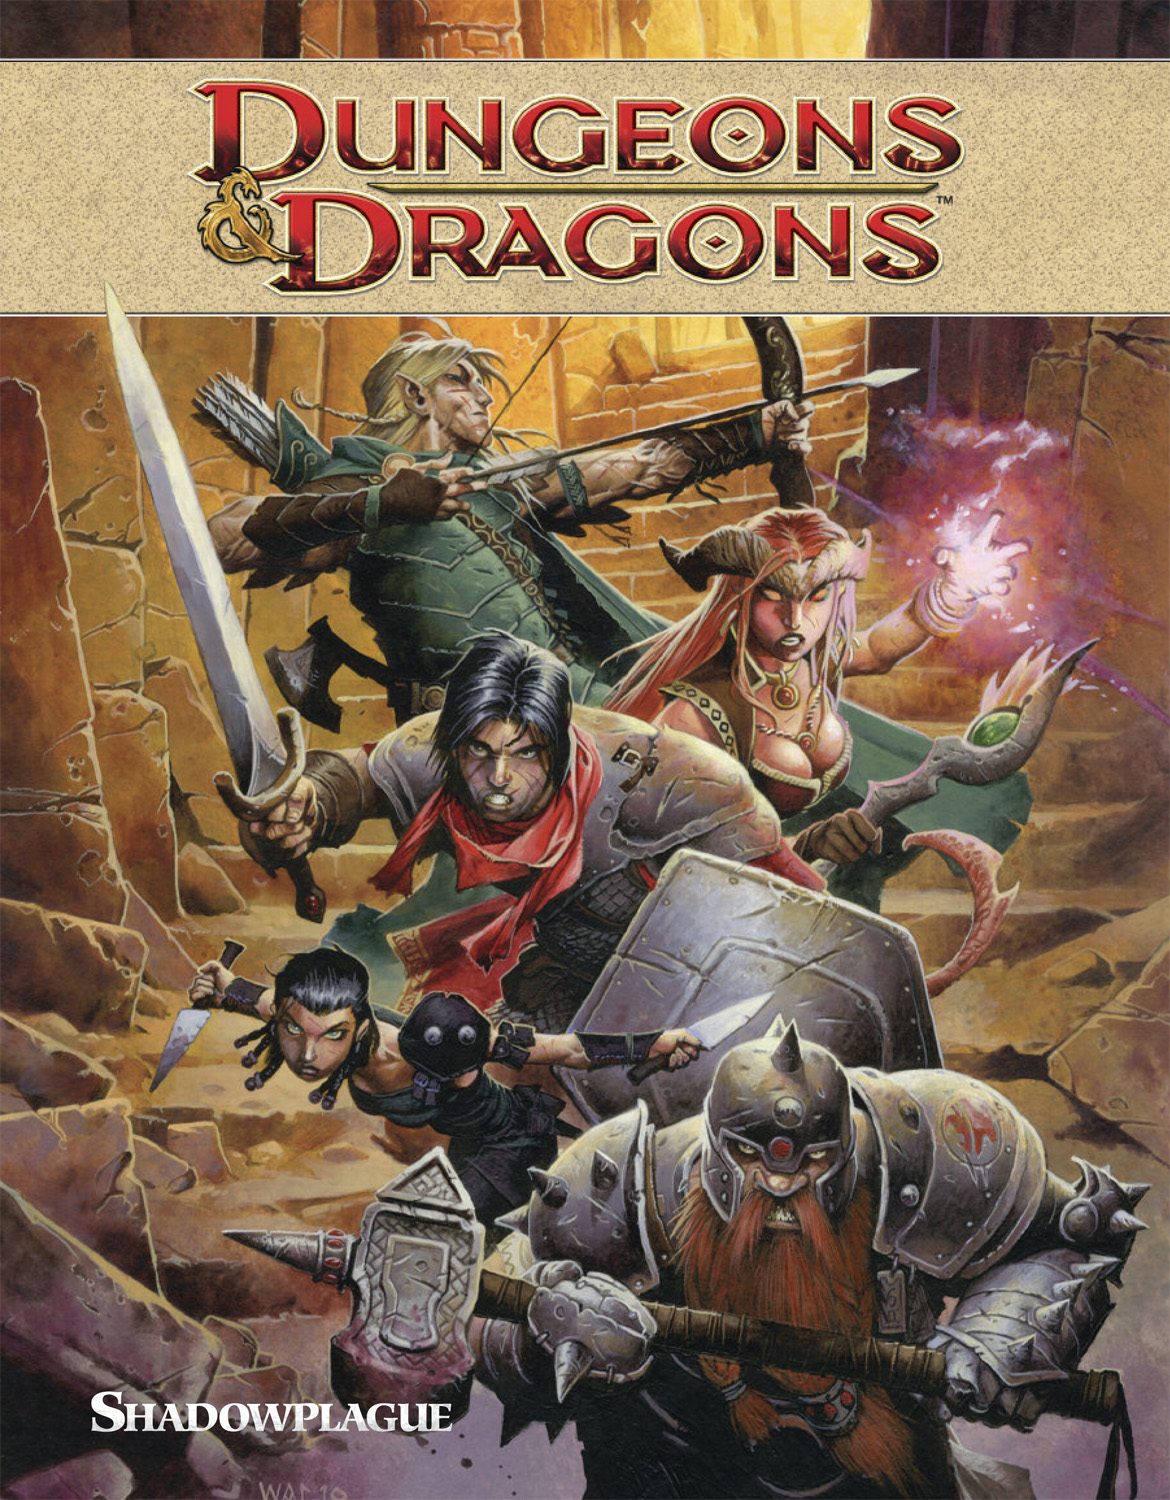 Dungeons &amp; Dragons Volume 1